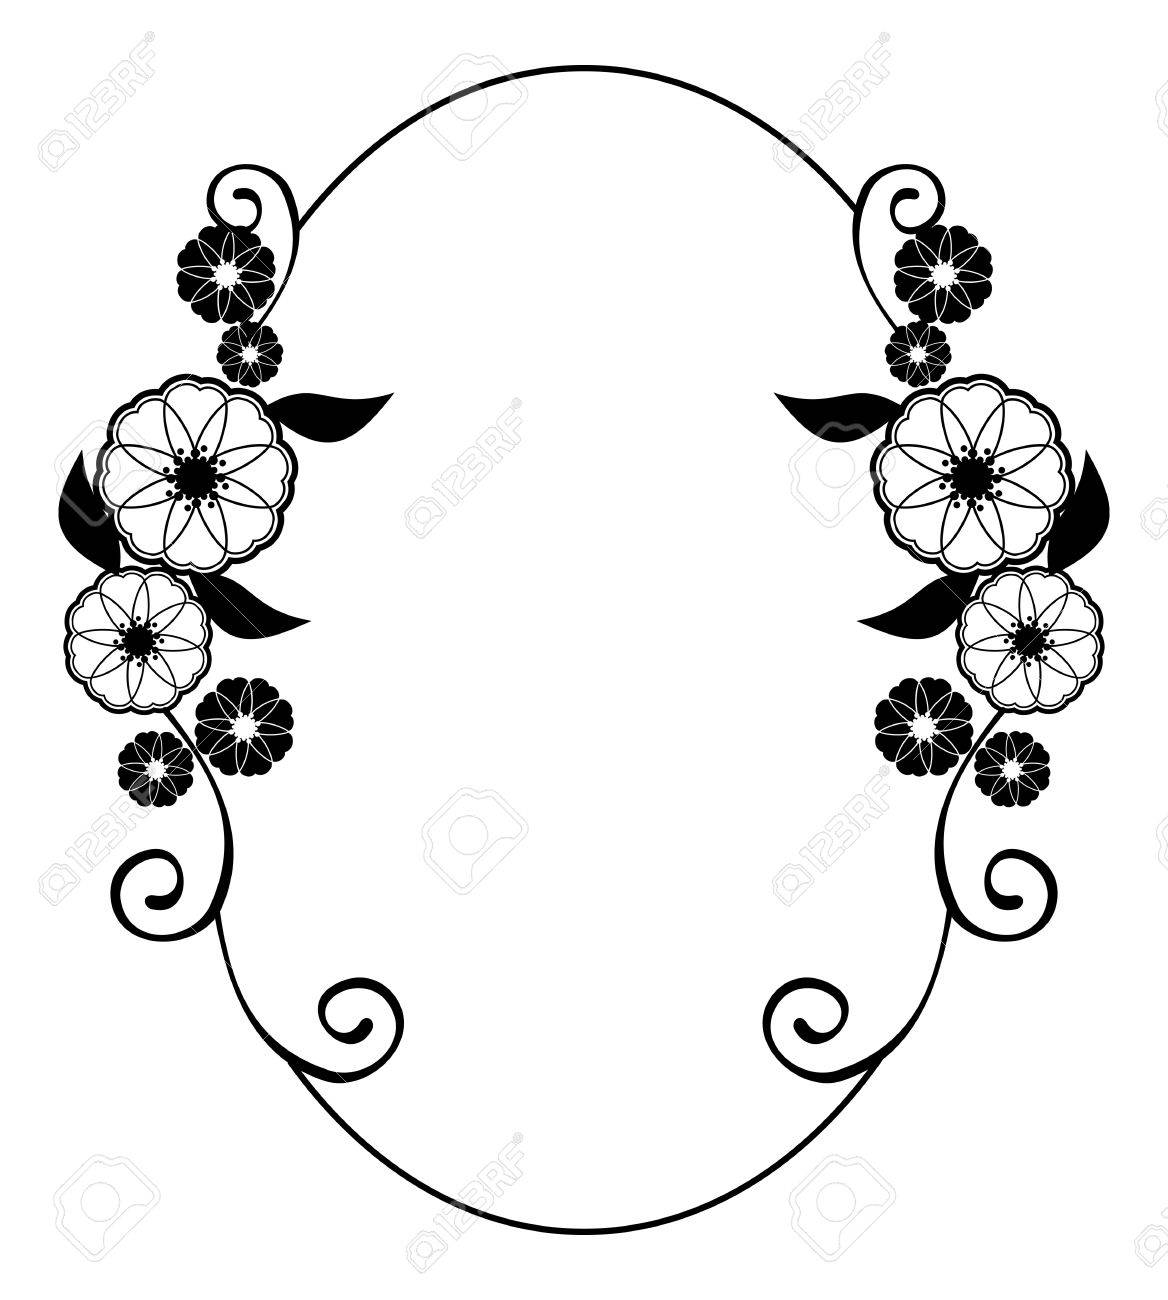 Arranged clipart clipart freeuse library Collection of Arranged clipart | Free download best Arranged clipart ... clipart freeuse library